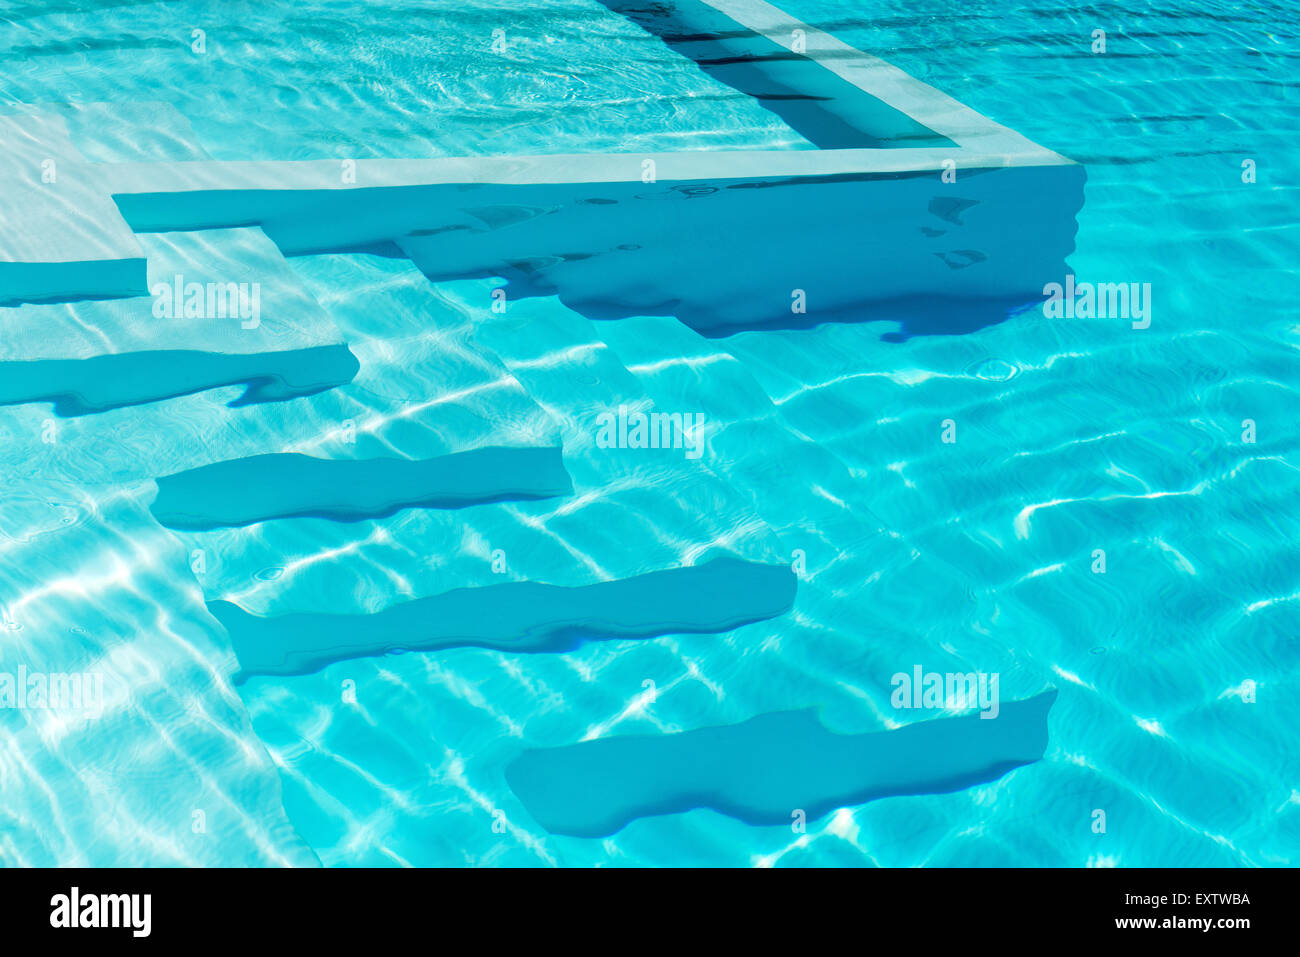 Underwater steps in a sparkling blue swimming pool with reflections - Stock Image